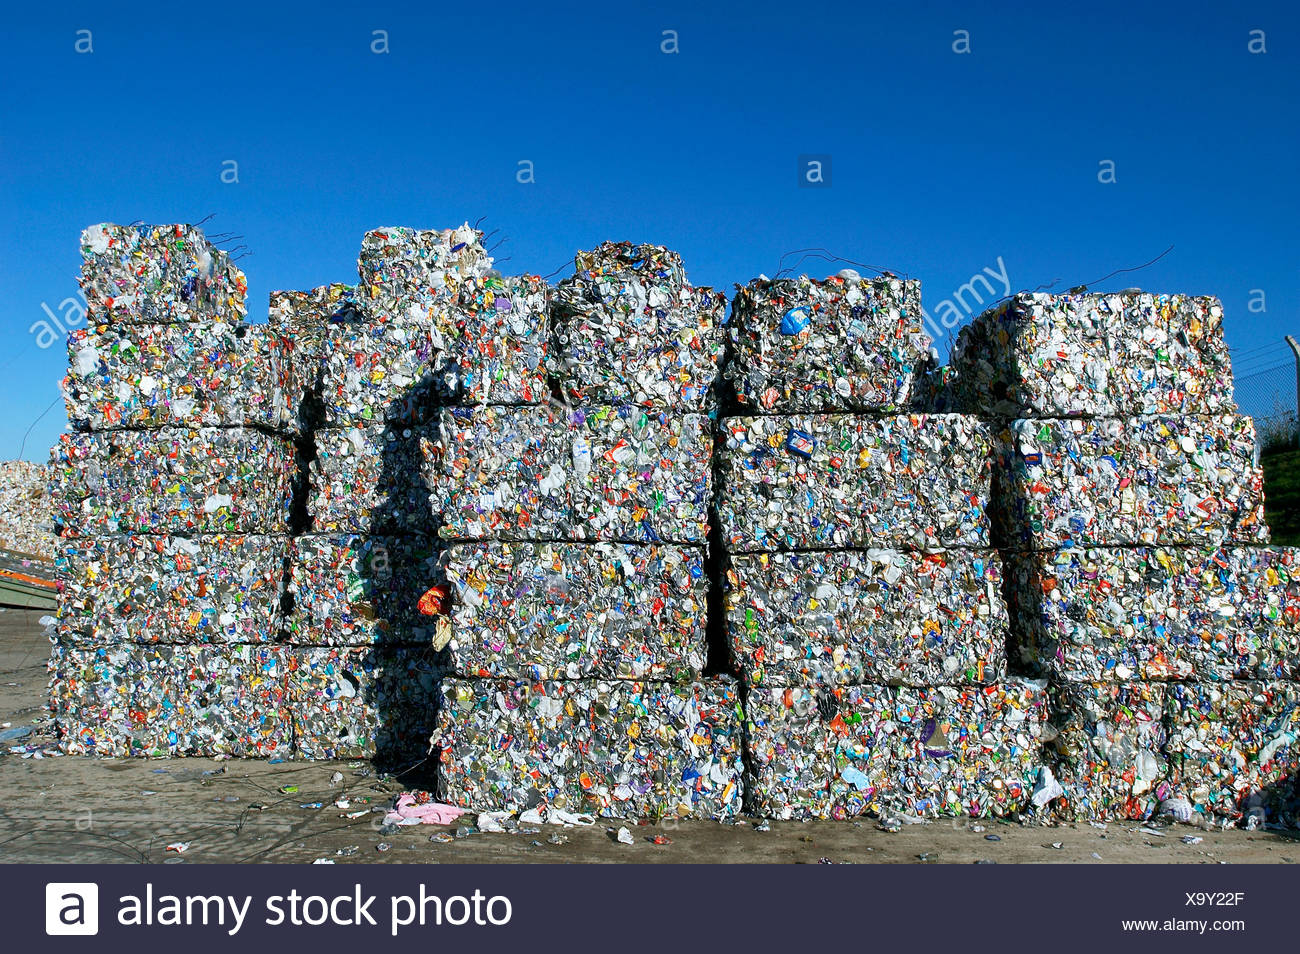 Recycling bail ready to be processed - Stock Image